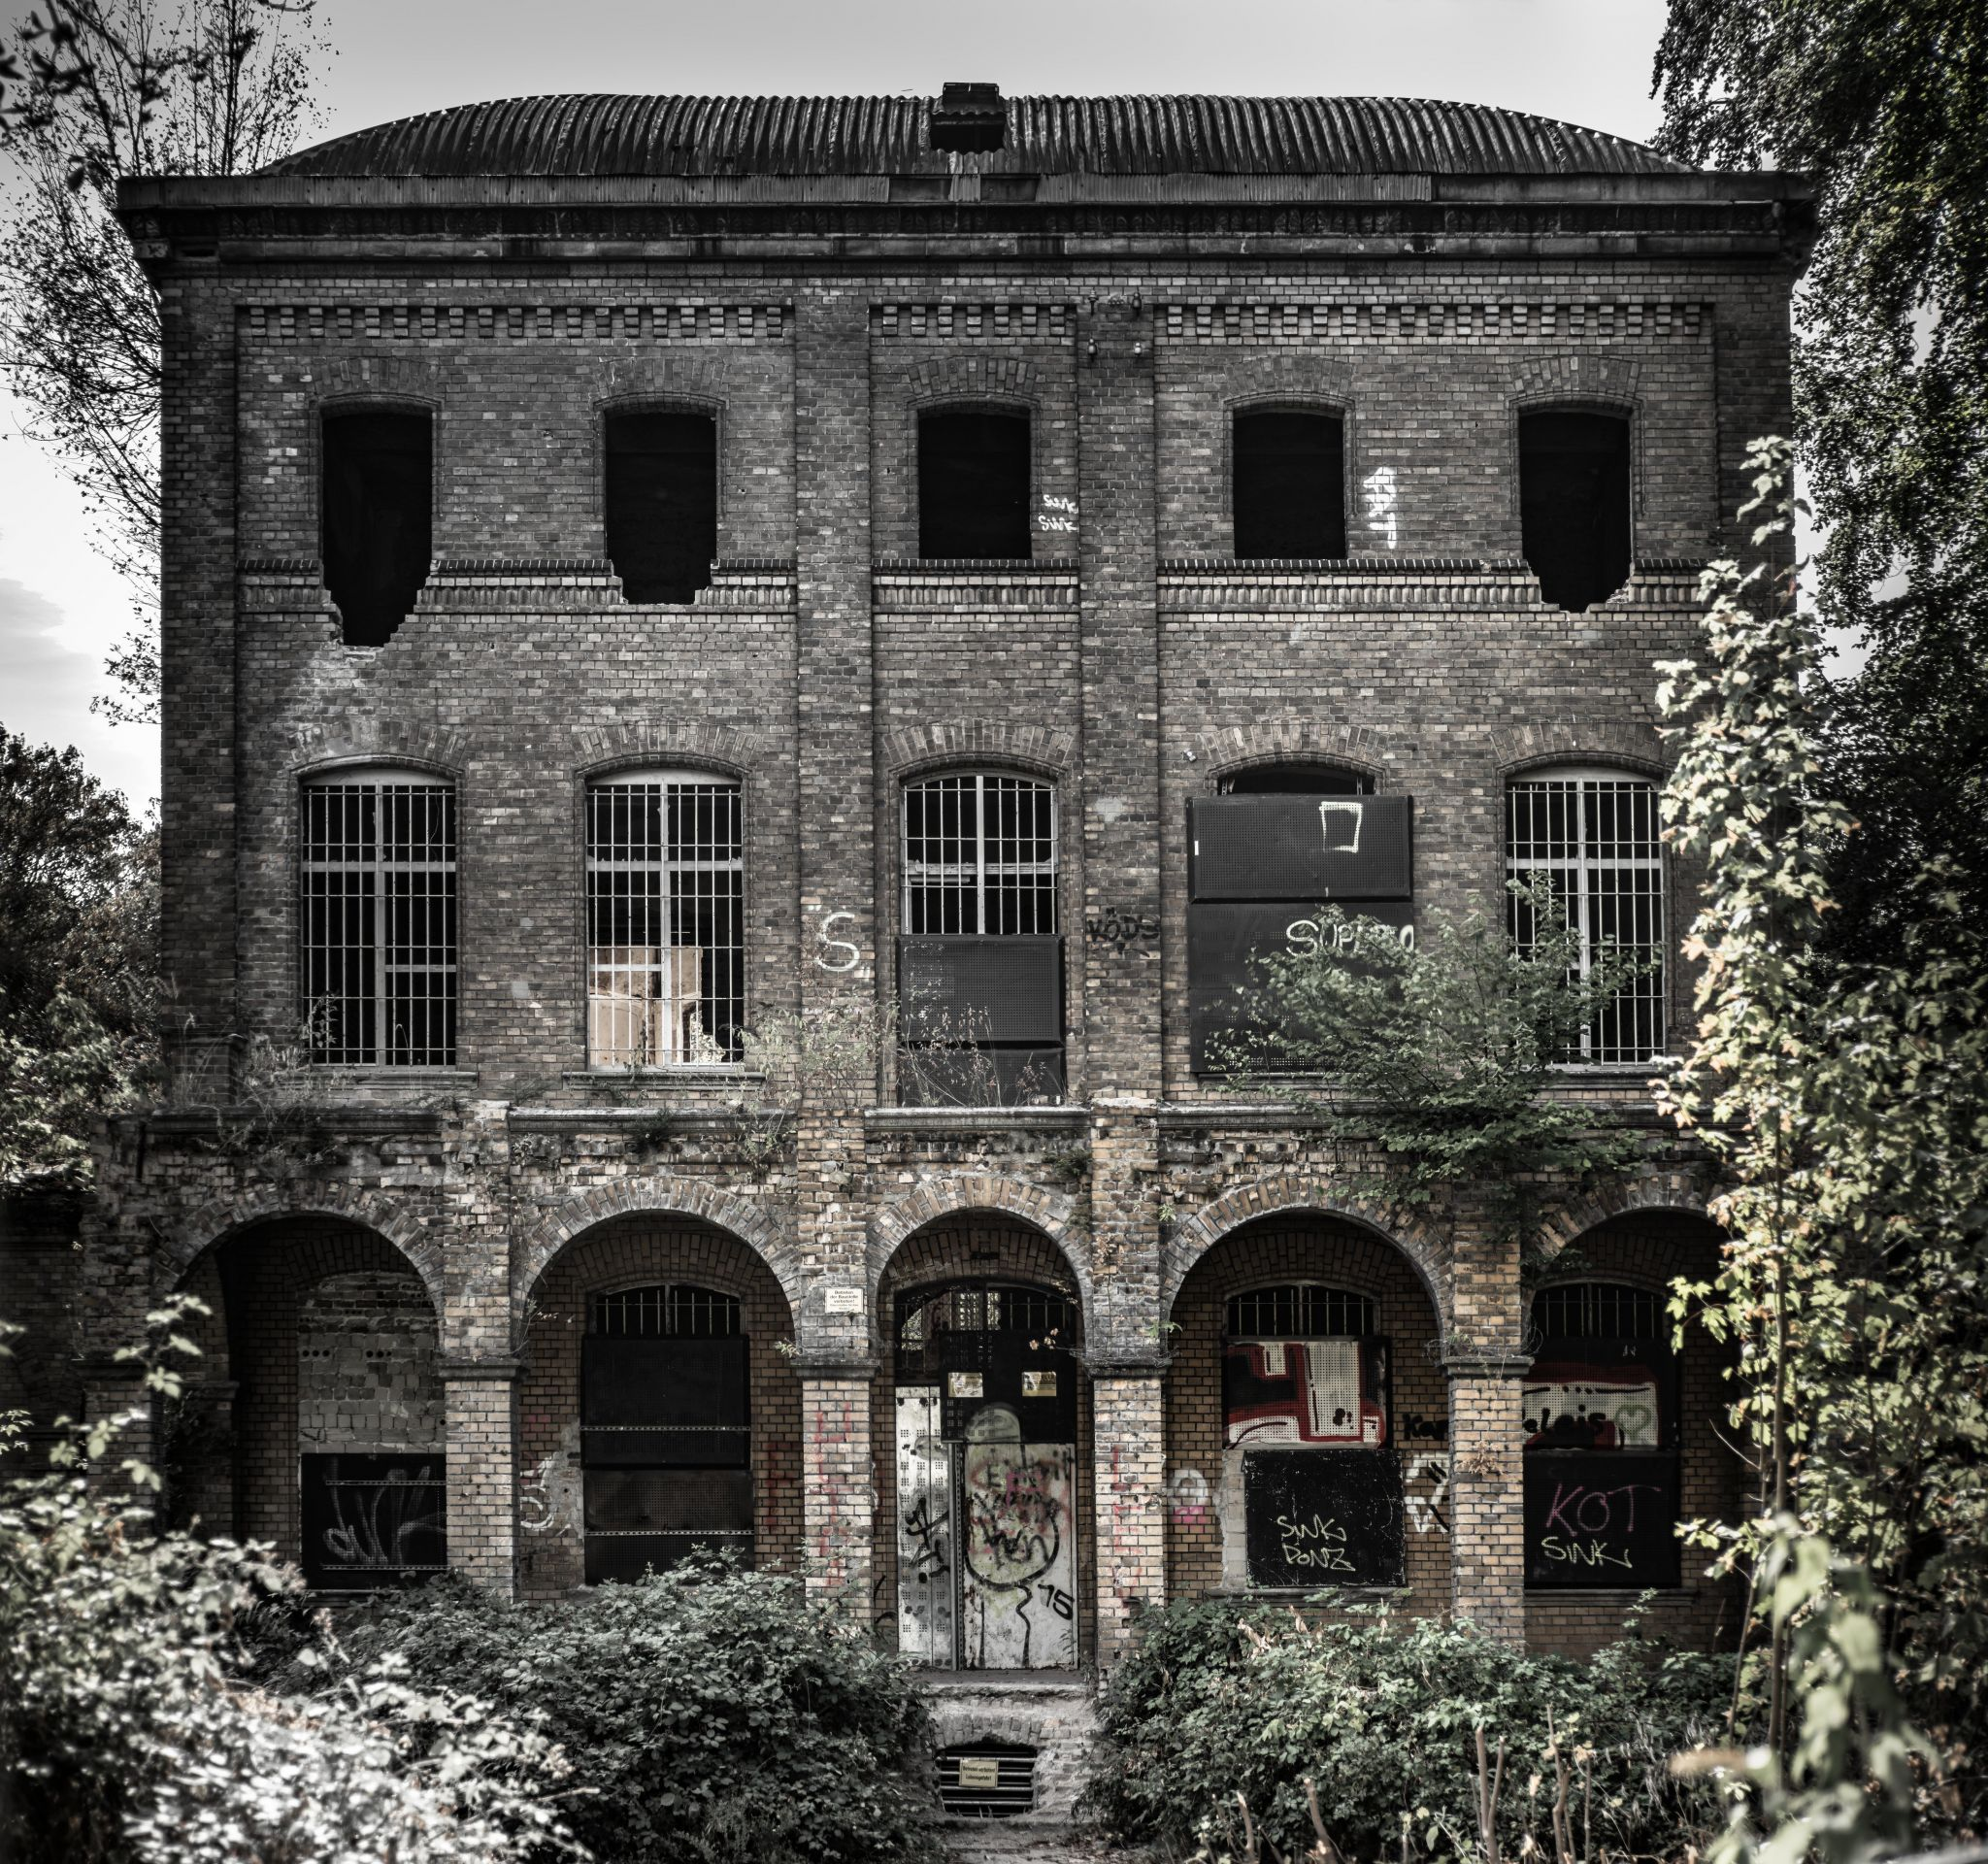 Lost place N Cologne, Germany